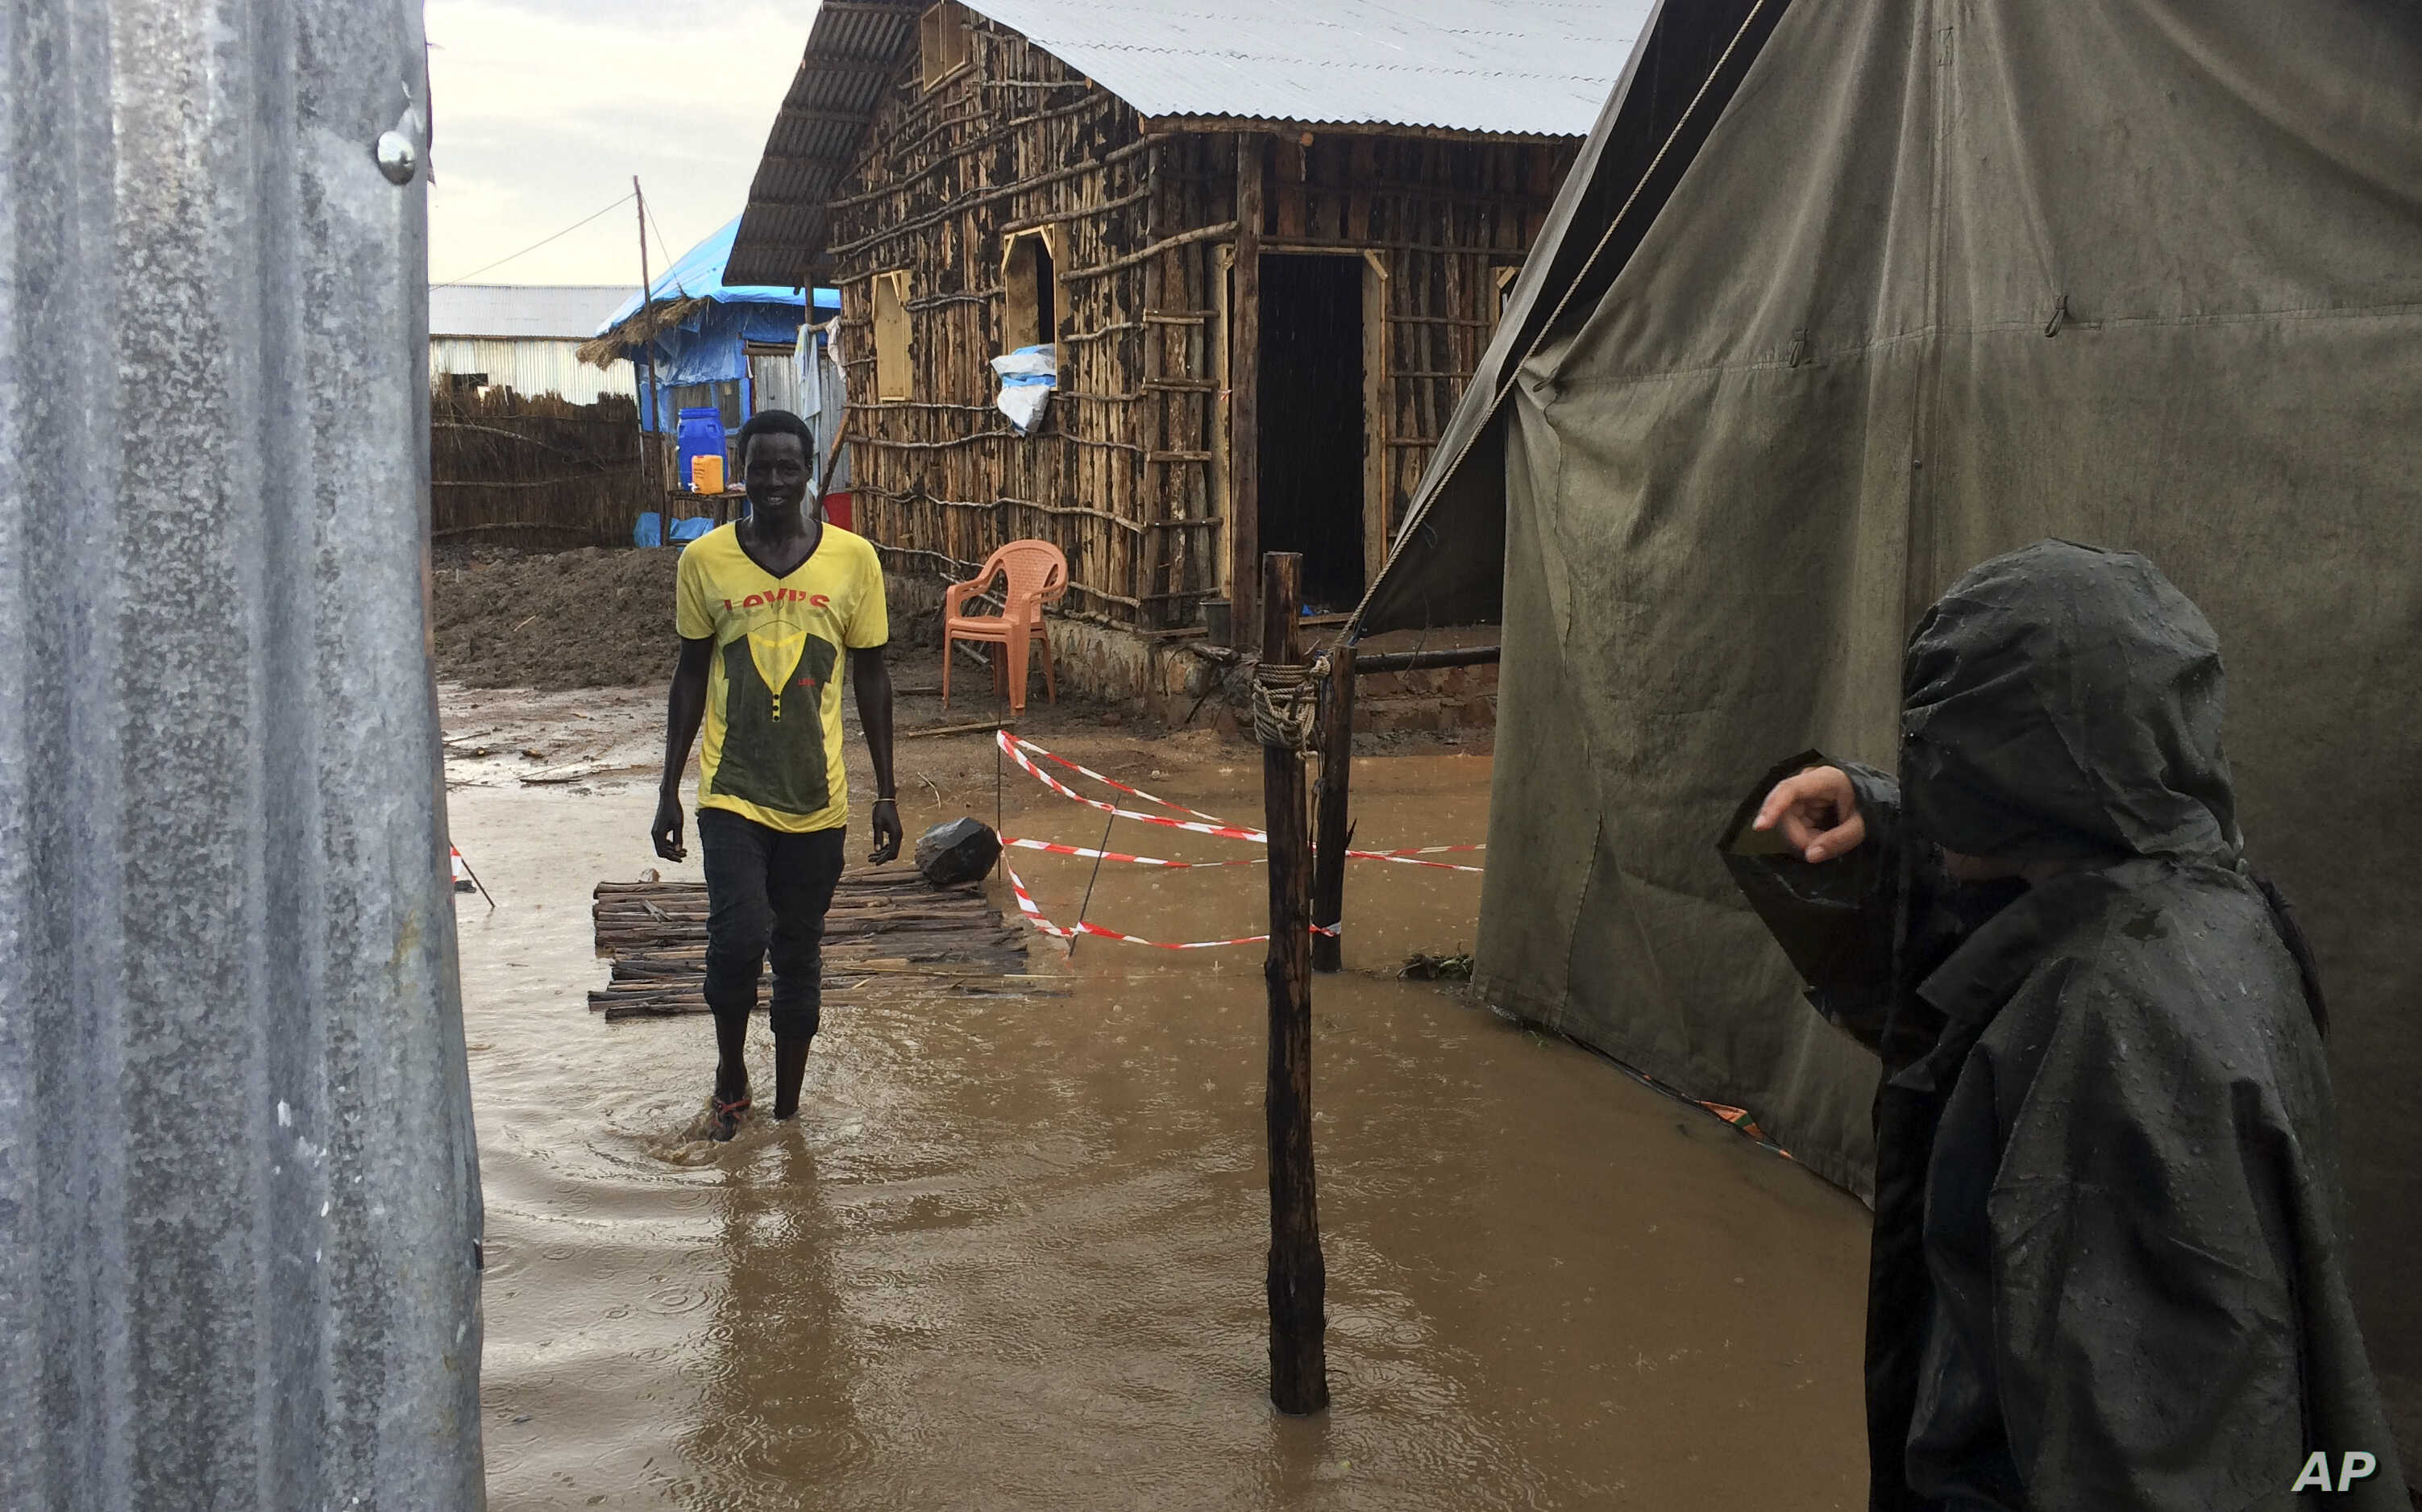 FILE - Flooding is seen after heavy rains at the Lietchuor refugee camp in the Gambella region of Ethiopia.